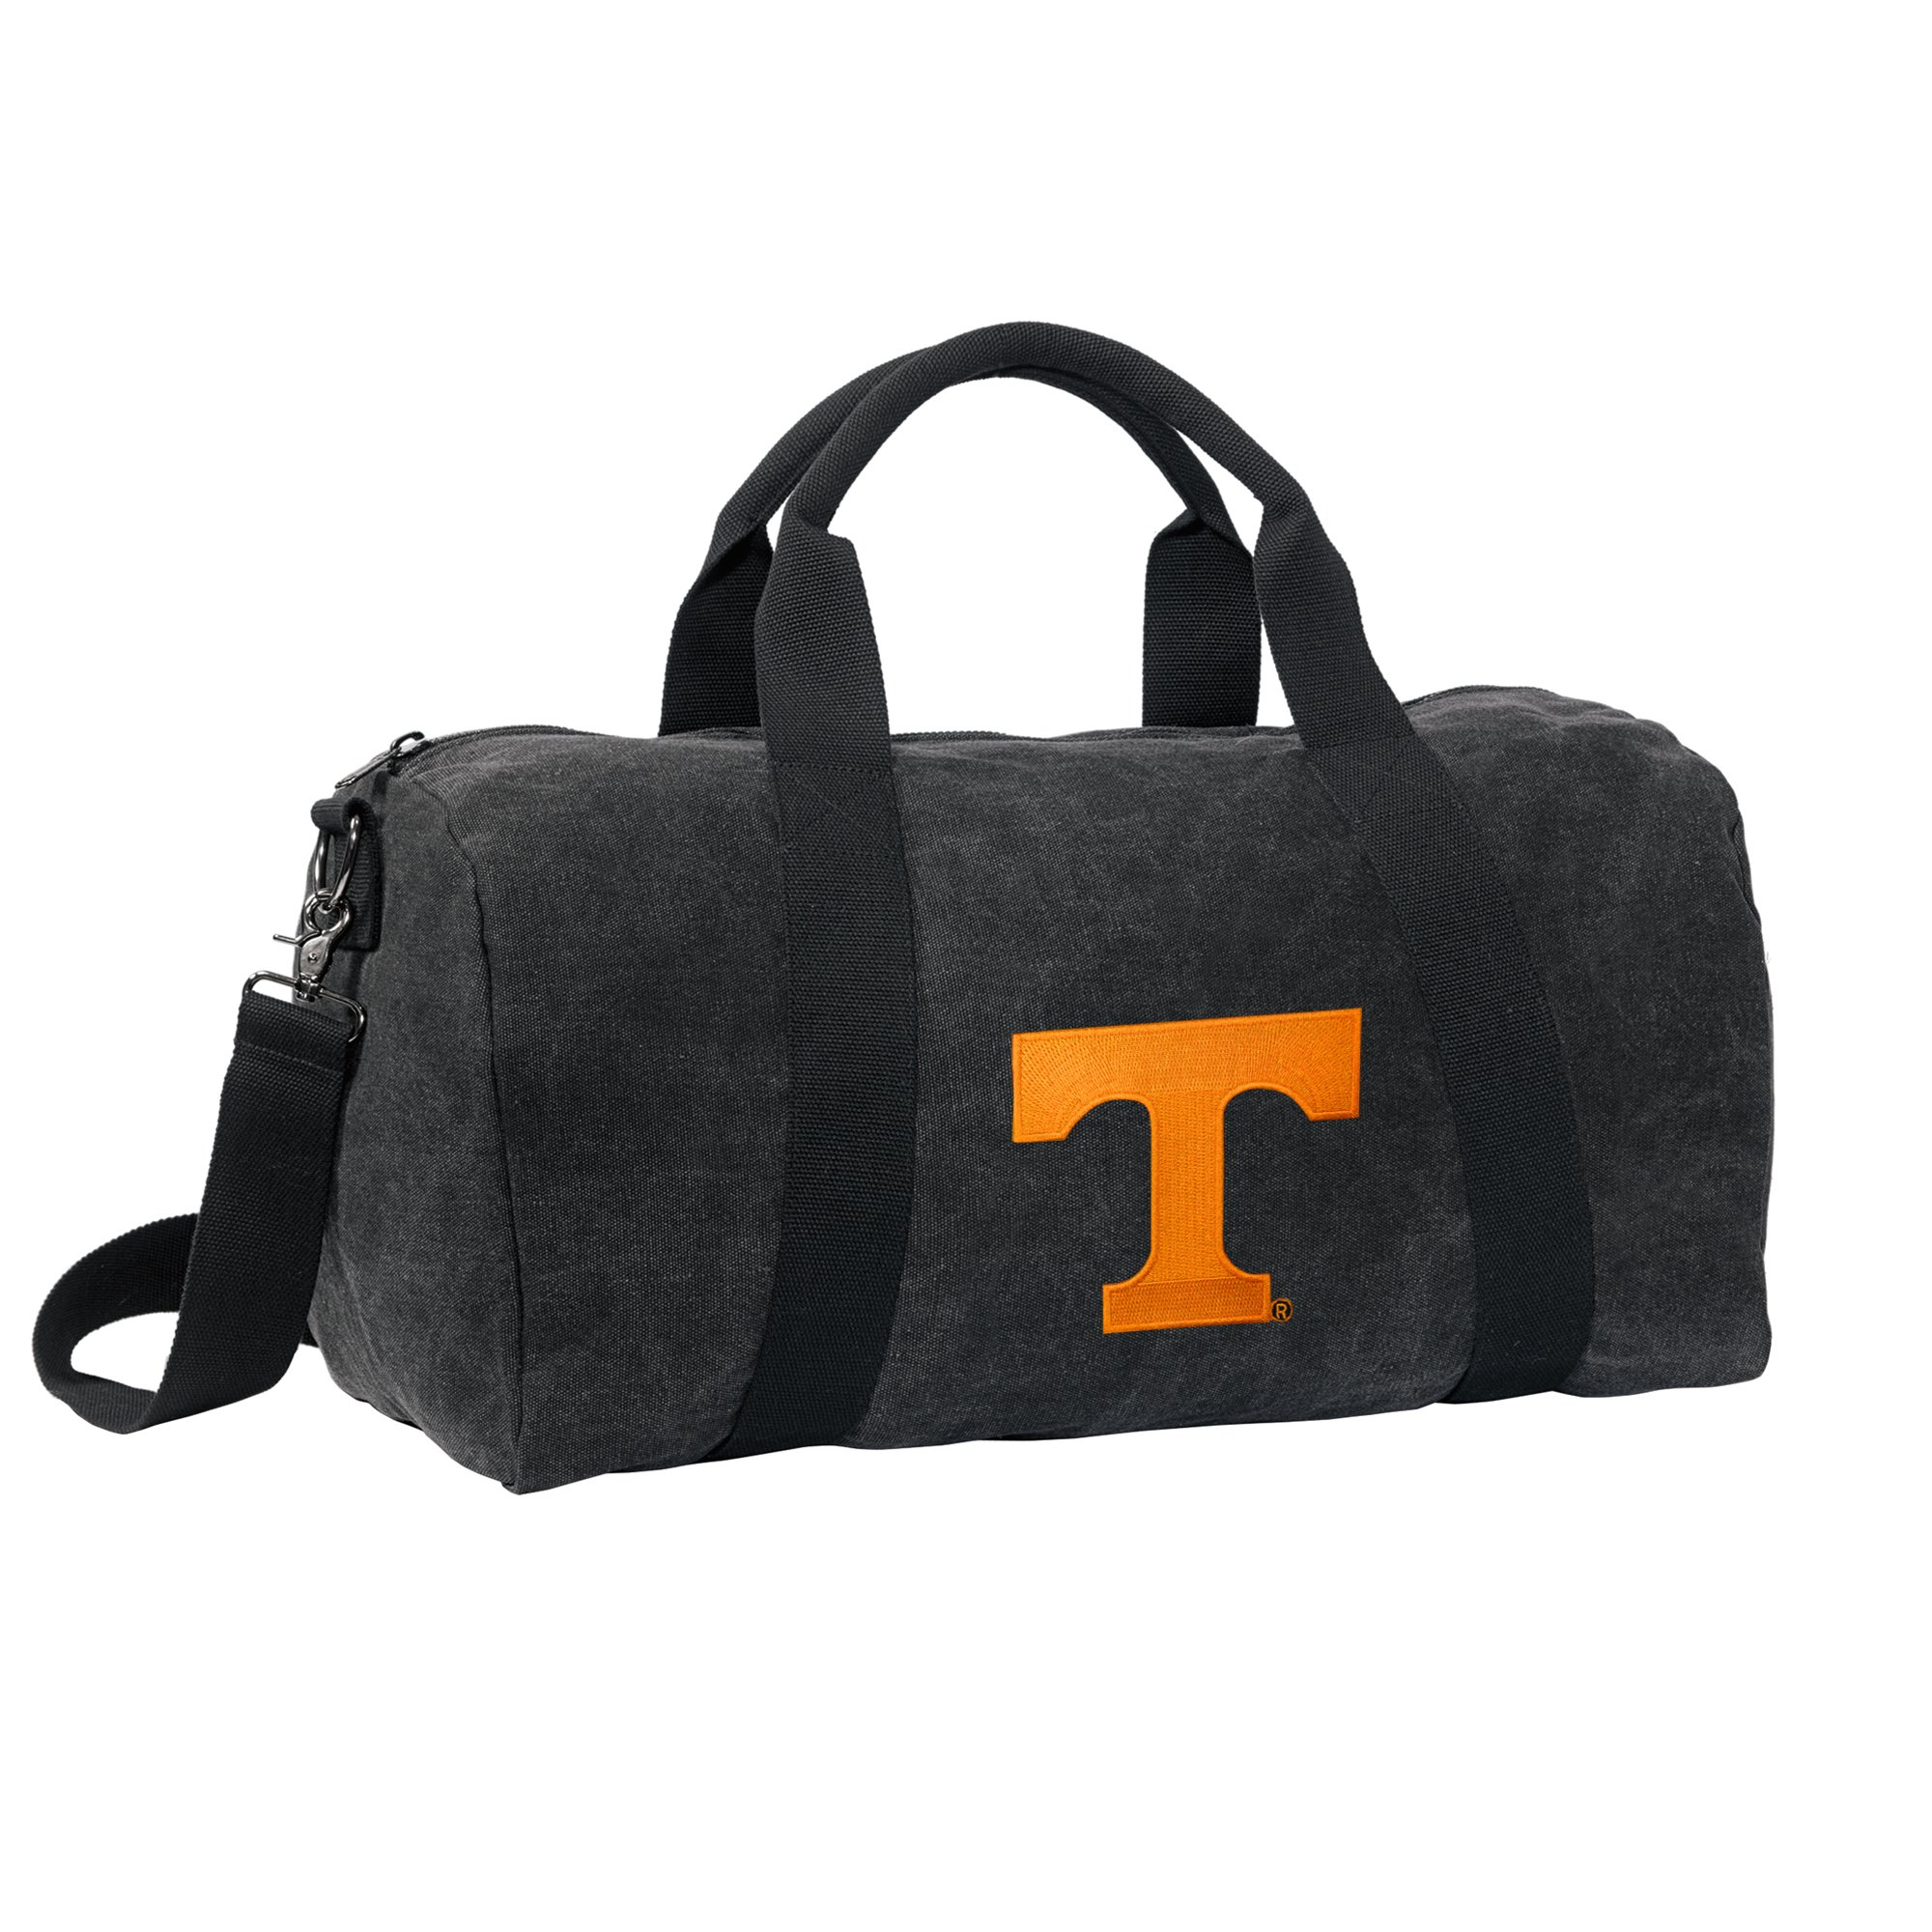 University of Tennessee Duffel Bag or CANVAS Tennessee Vols Suitcase Luggage